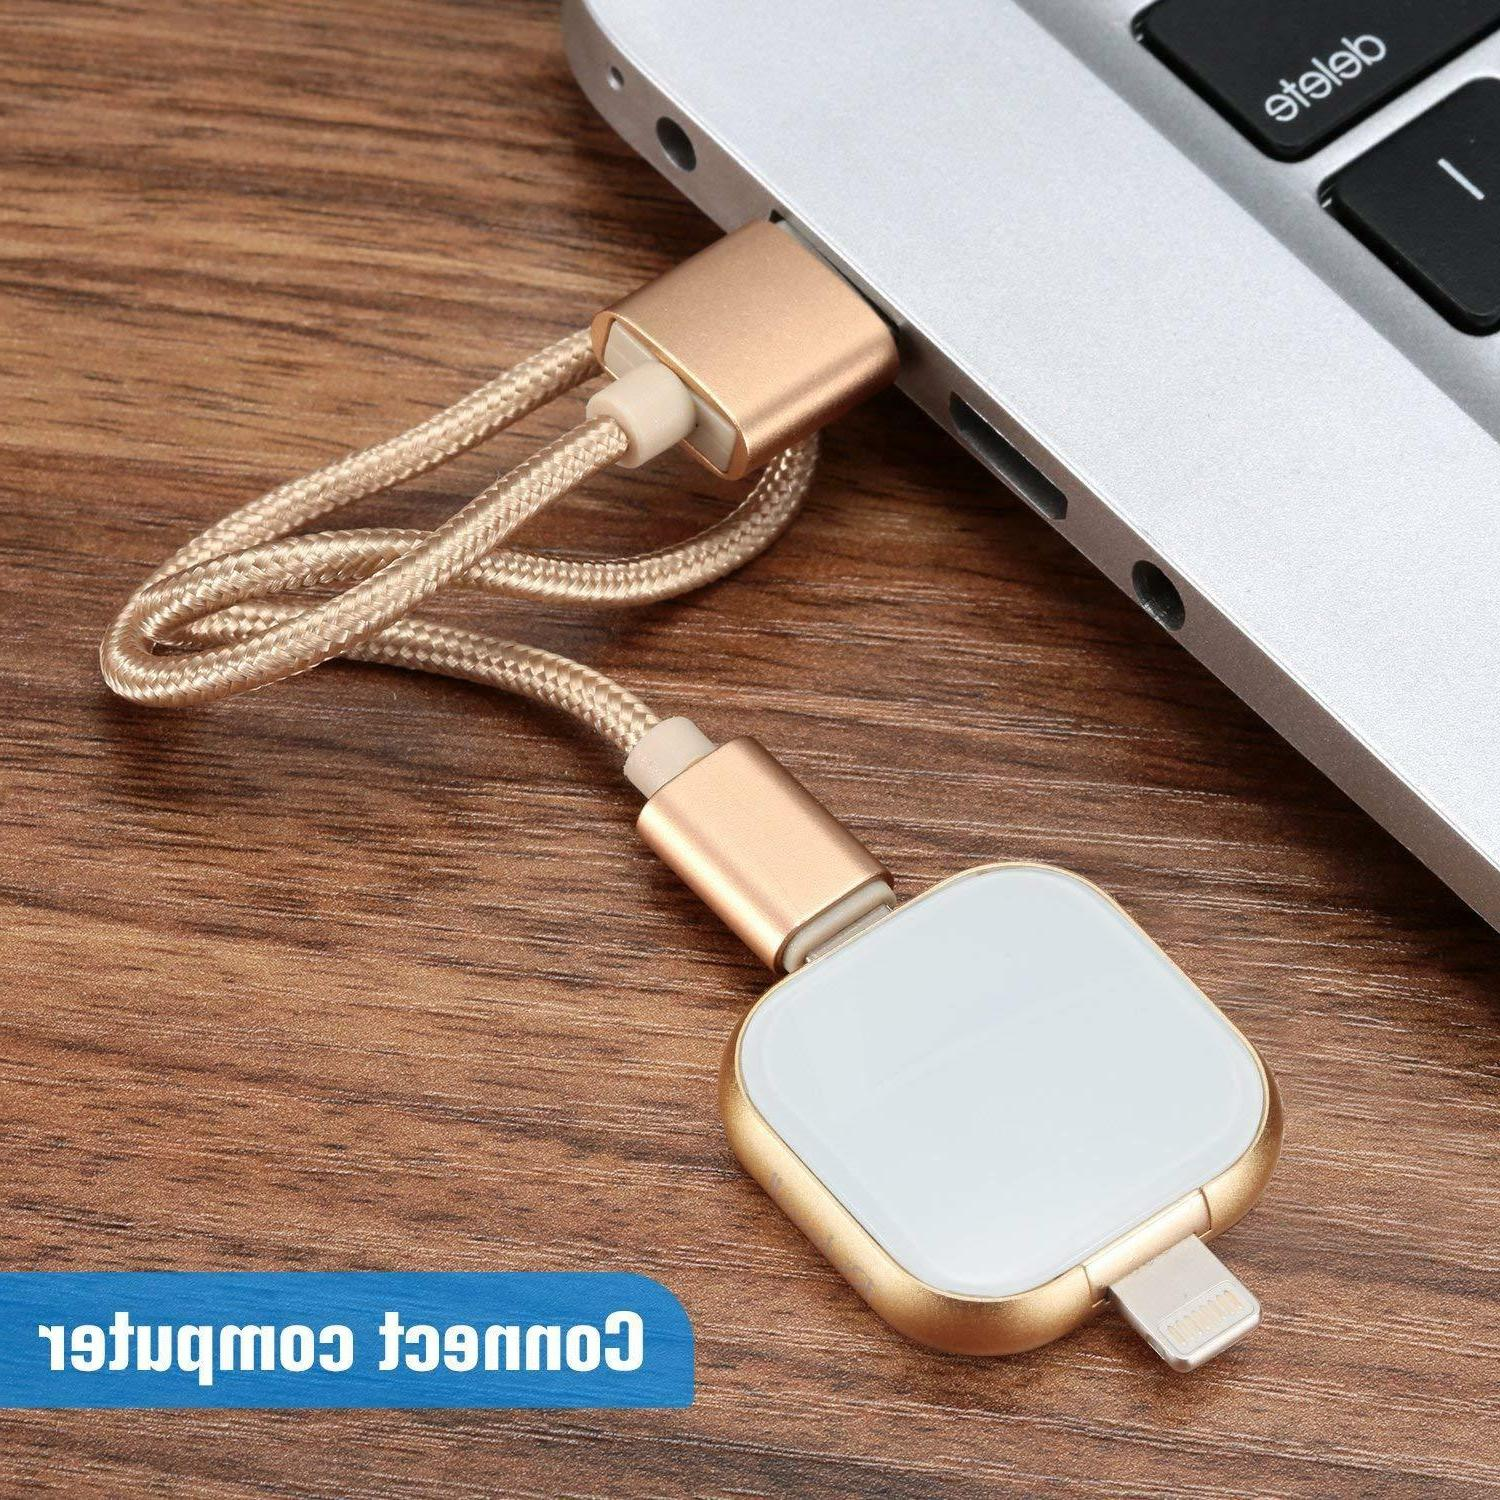 64GB 3.0 Flash Drive 3 for iPhone, Android, PC and Mac